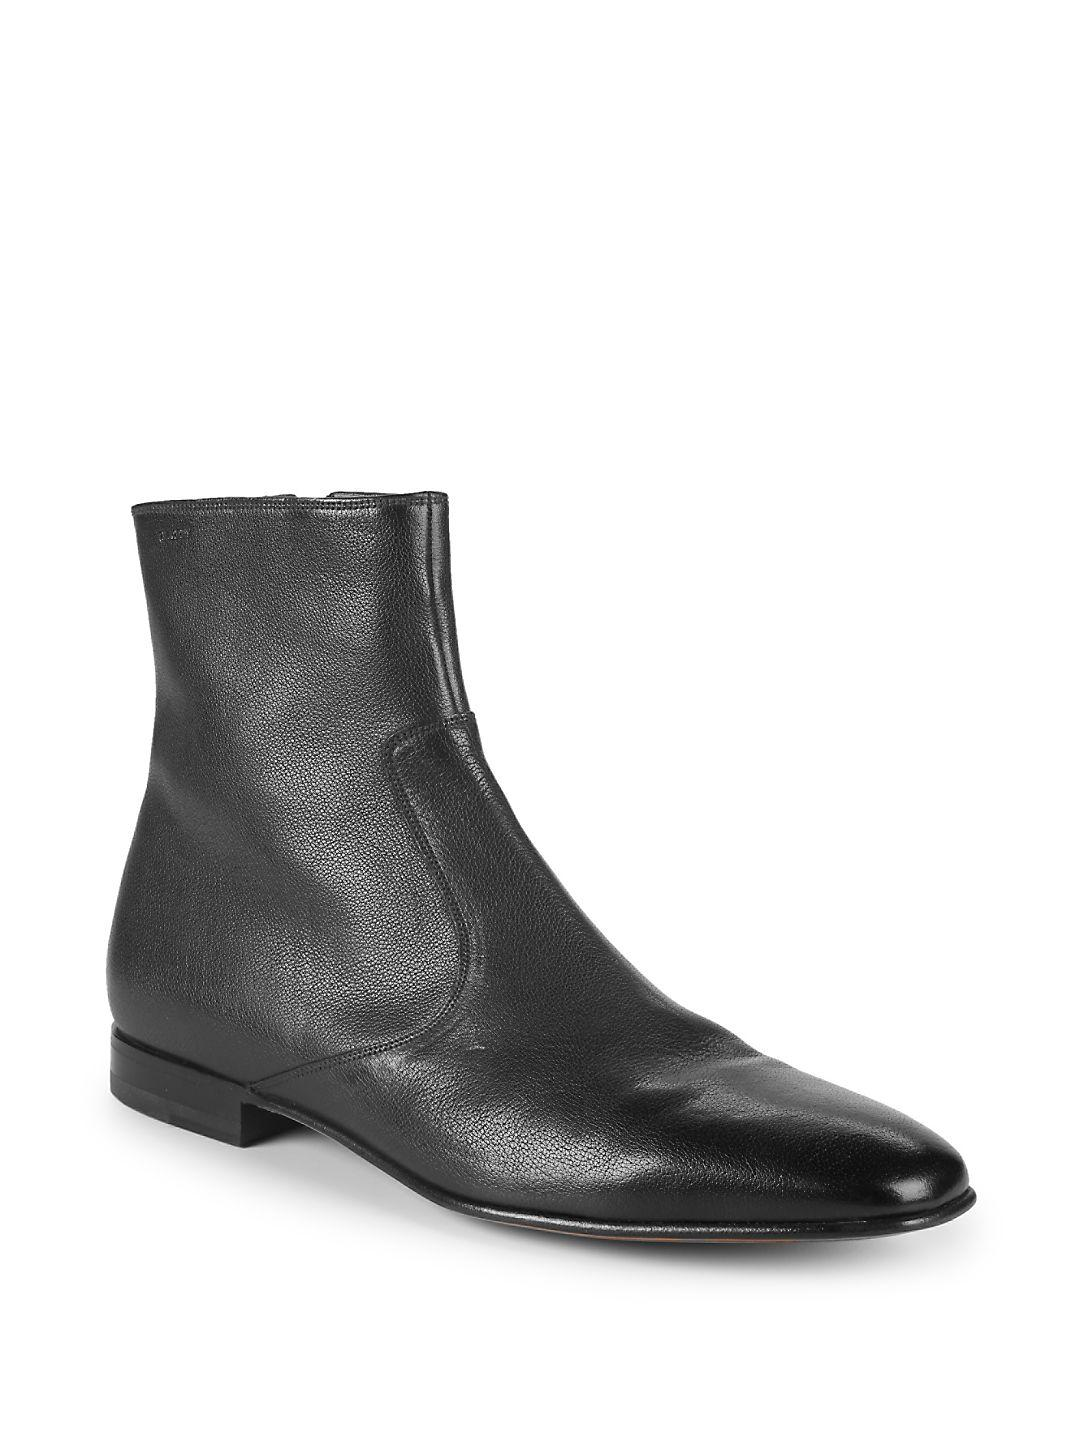 7c56dc91b426 bally-black-Briler-Leather-Ankle-Boots.jpeg